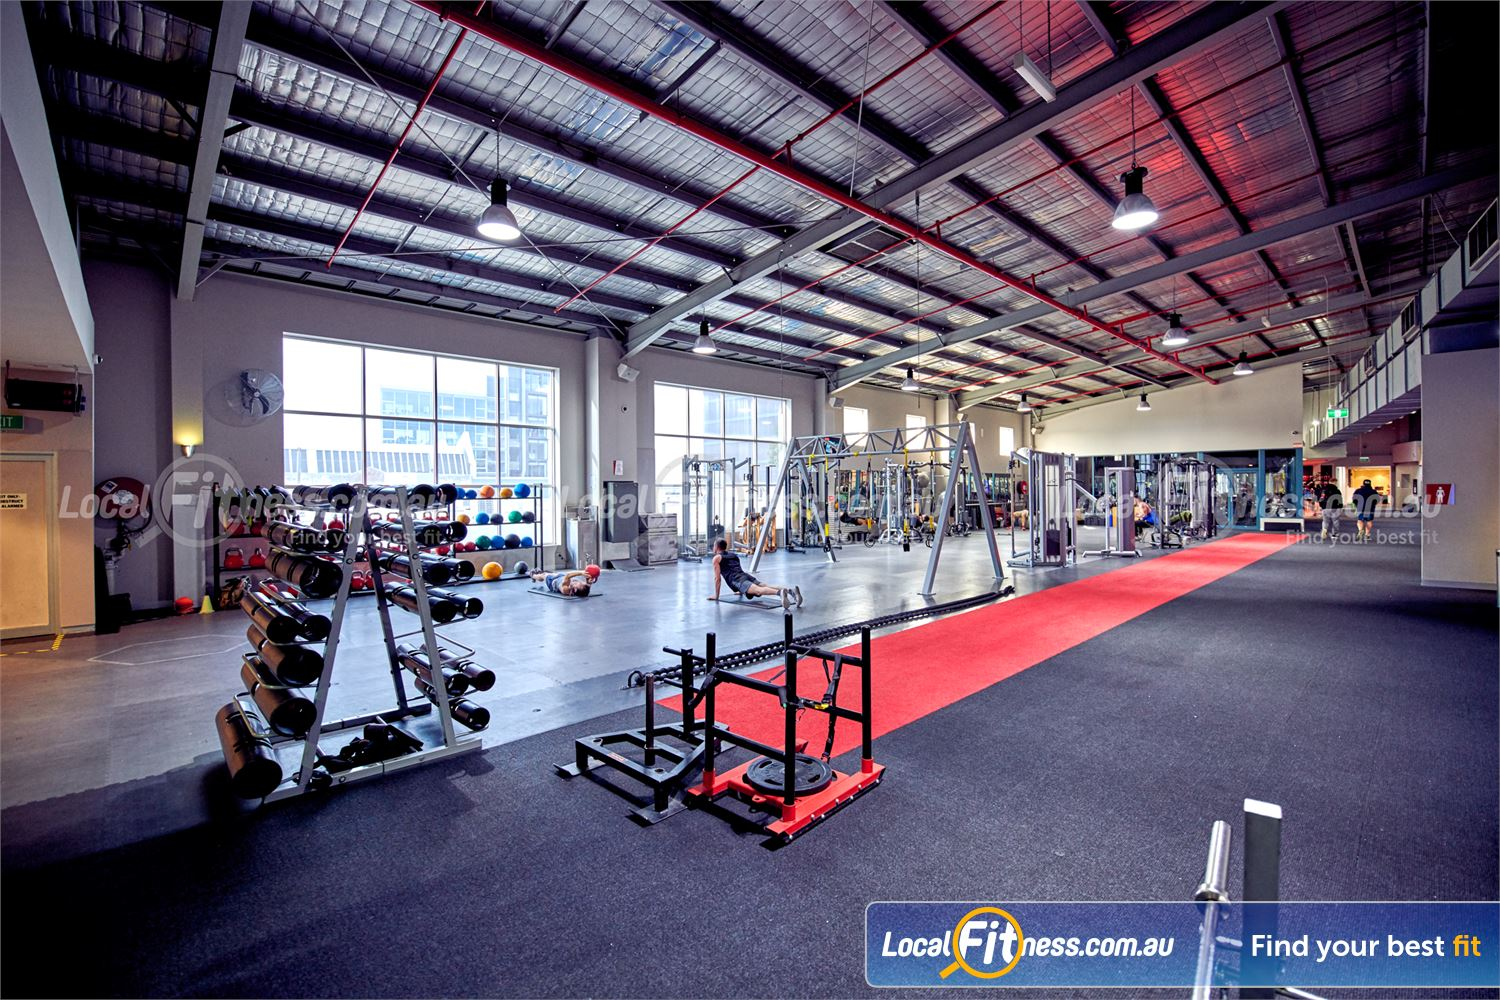 Fitness First Platinum Near Toorak Utilise the latest HIIT and functional training methods in our functional area overlooking Richmond.